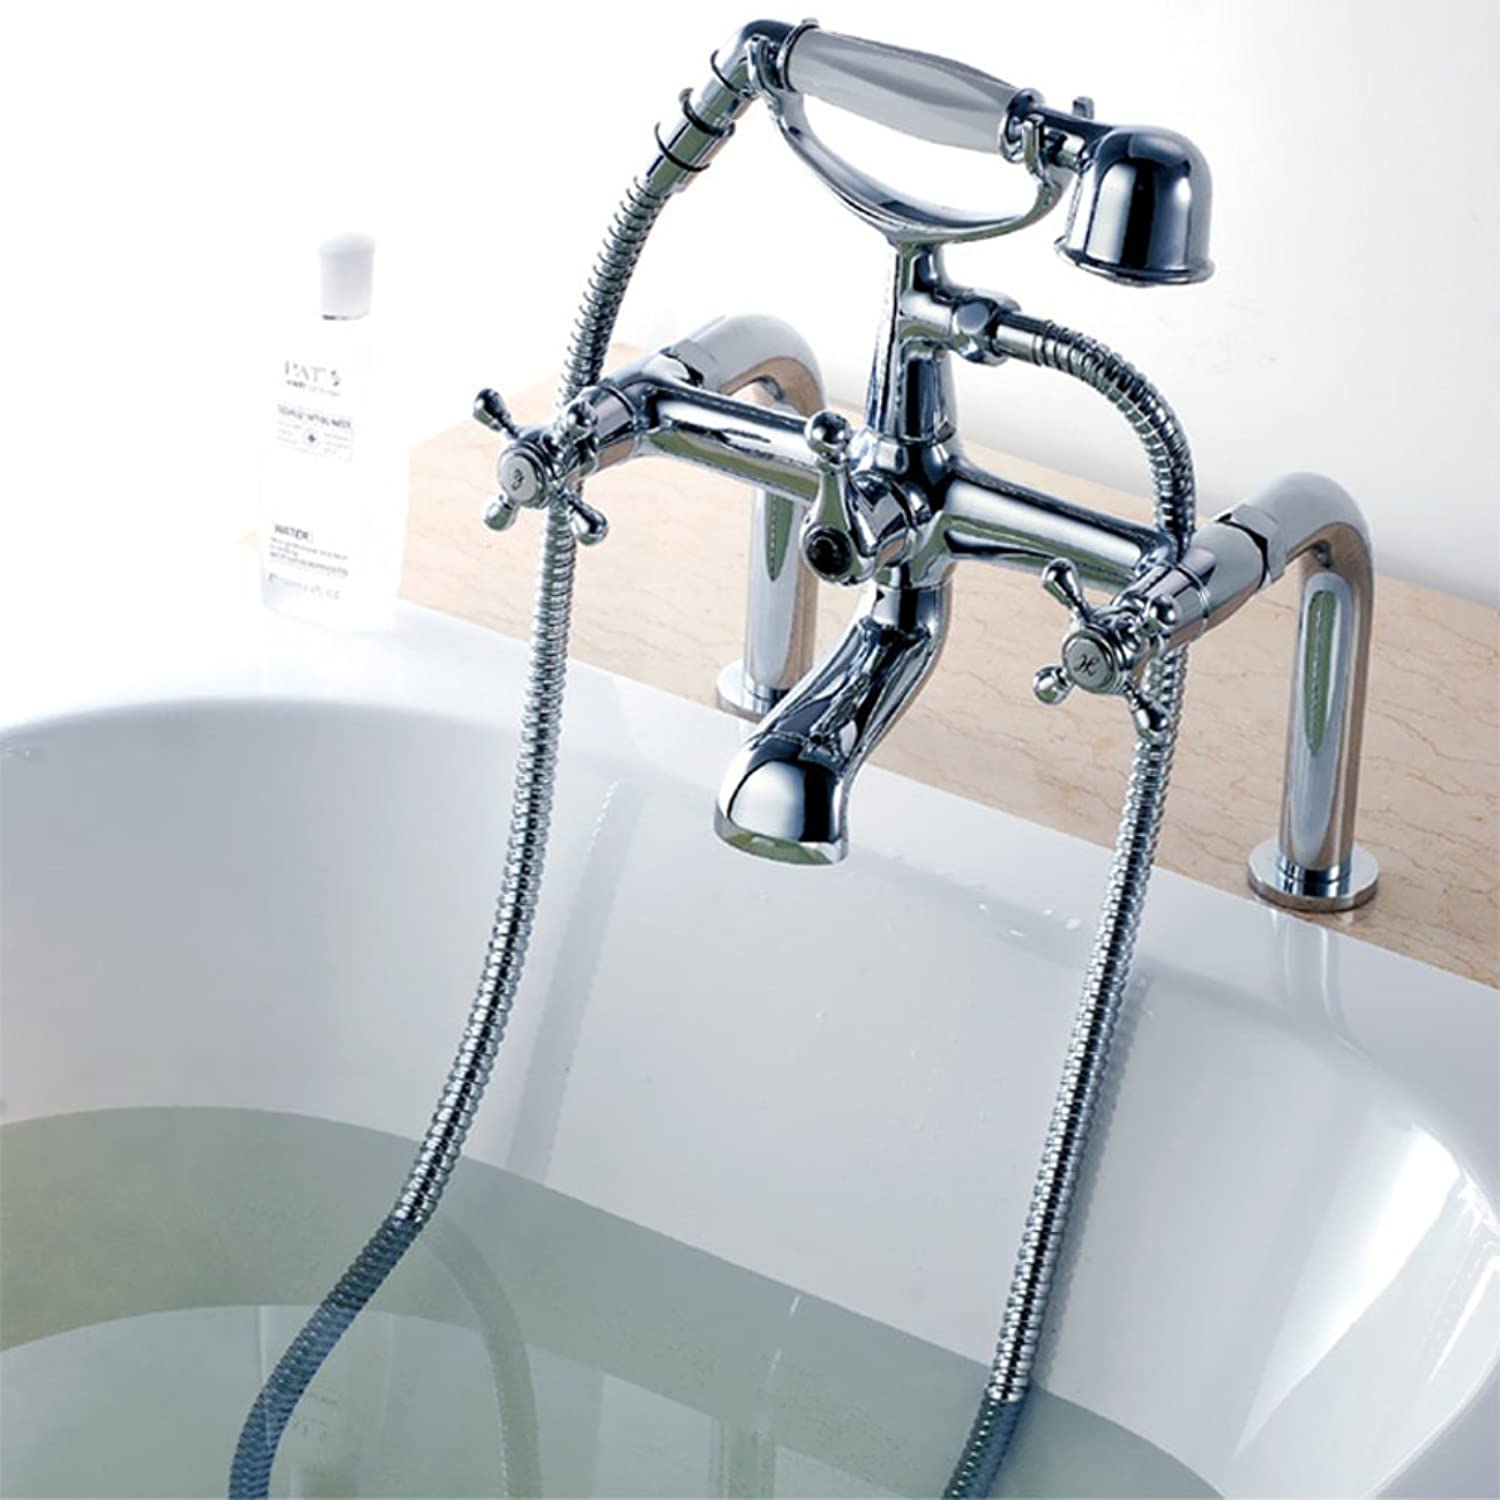 Tub Faucet Tank Side Shower Mixer hot and Cold Water Sprinkle Set-B